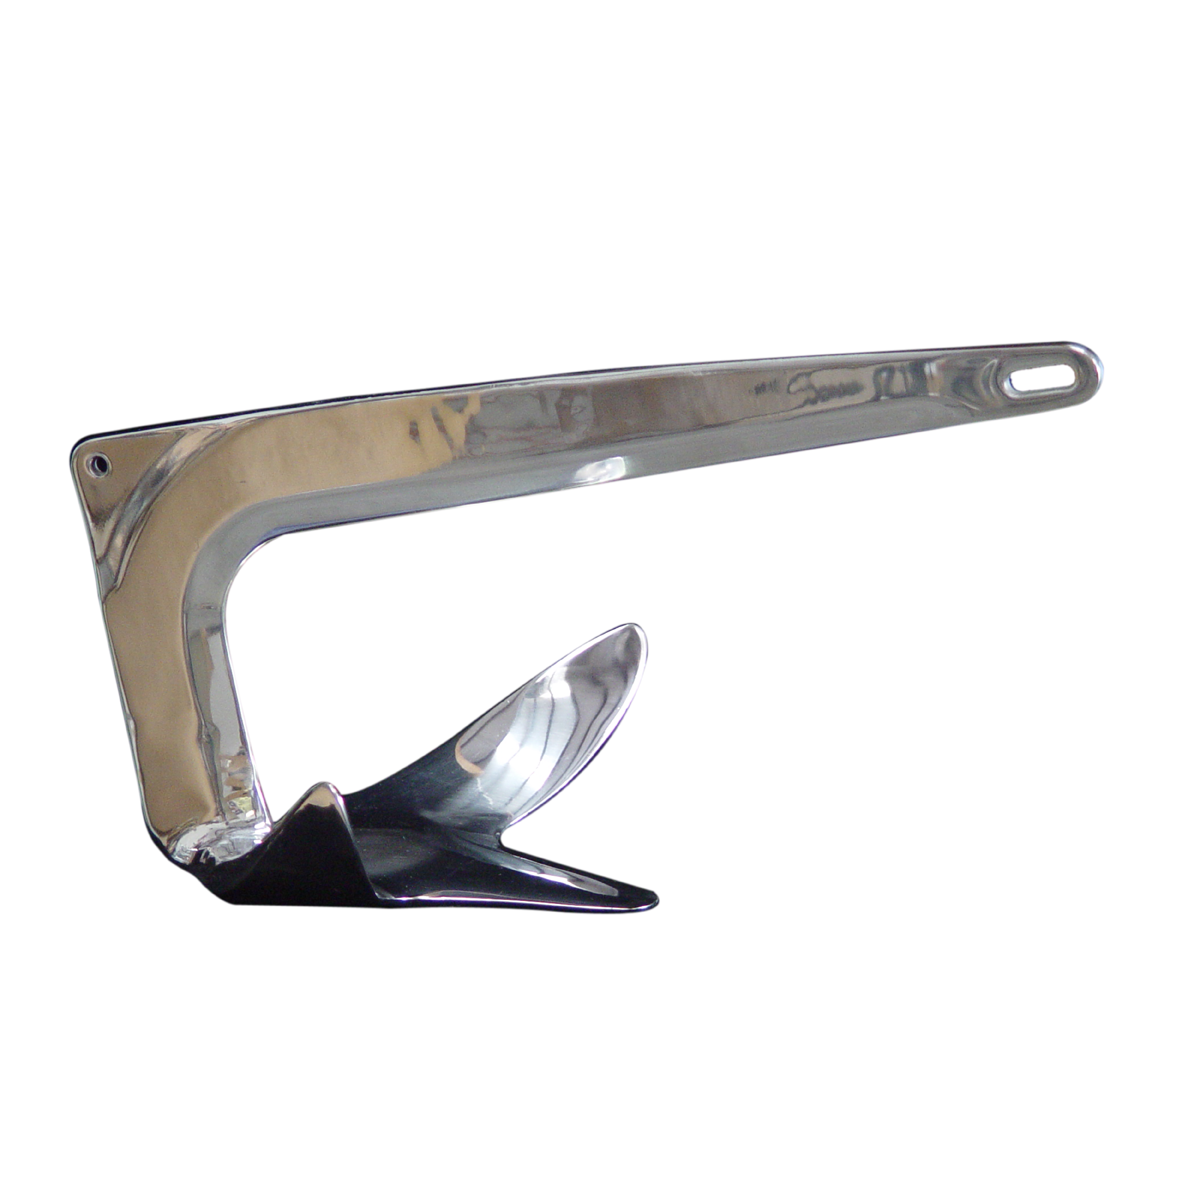 claw-bruce-anchor-stainless-steel-.png